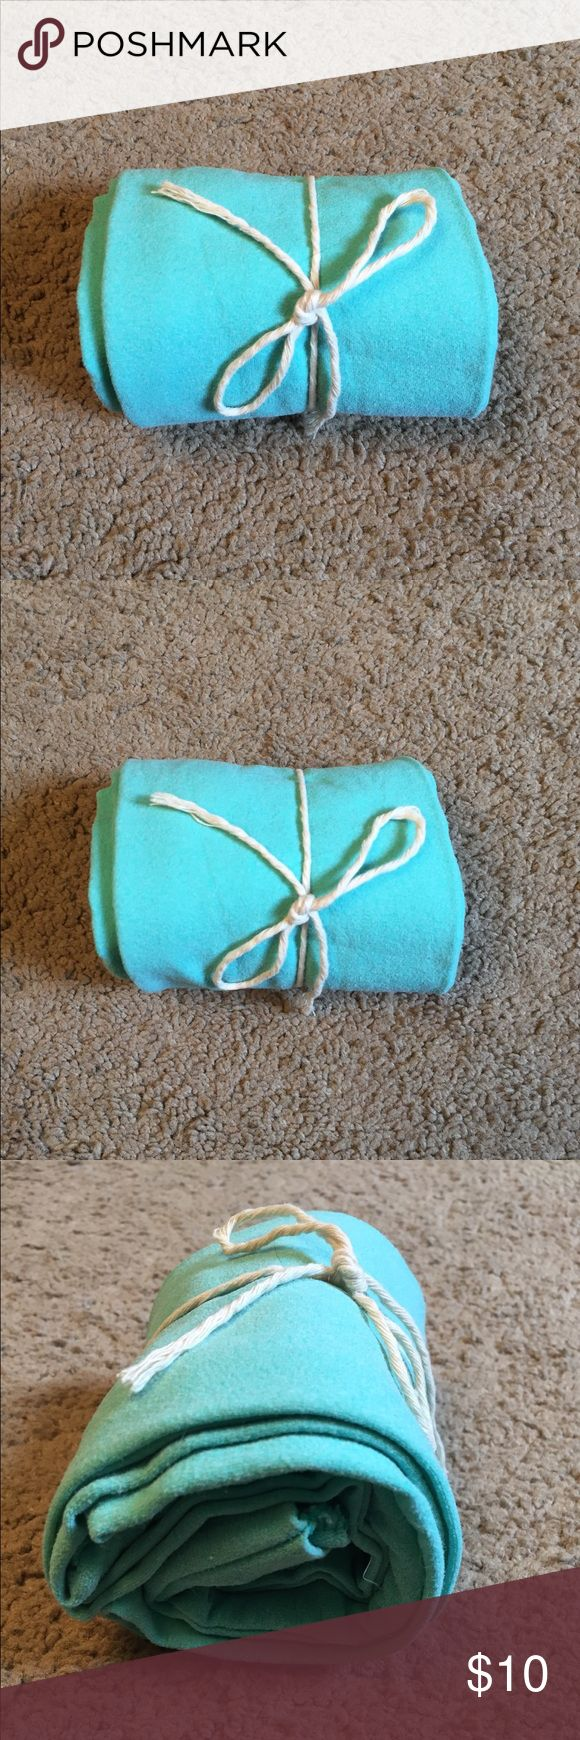 Turquoise Stockings -(NEW)- Bright Turquoise Opaque Stockings. Never Worn. Brand New Accessories Hosiery & Socks